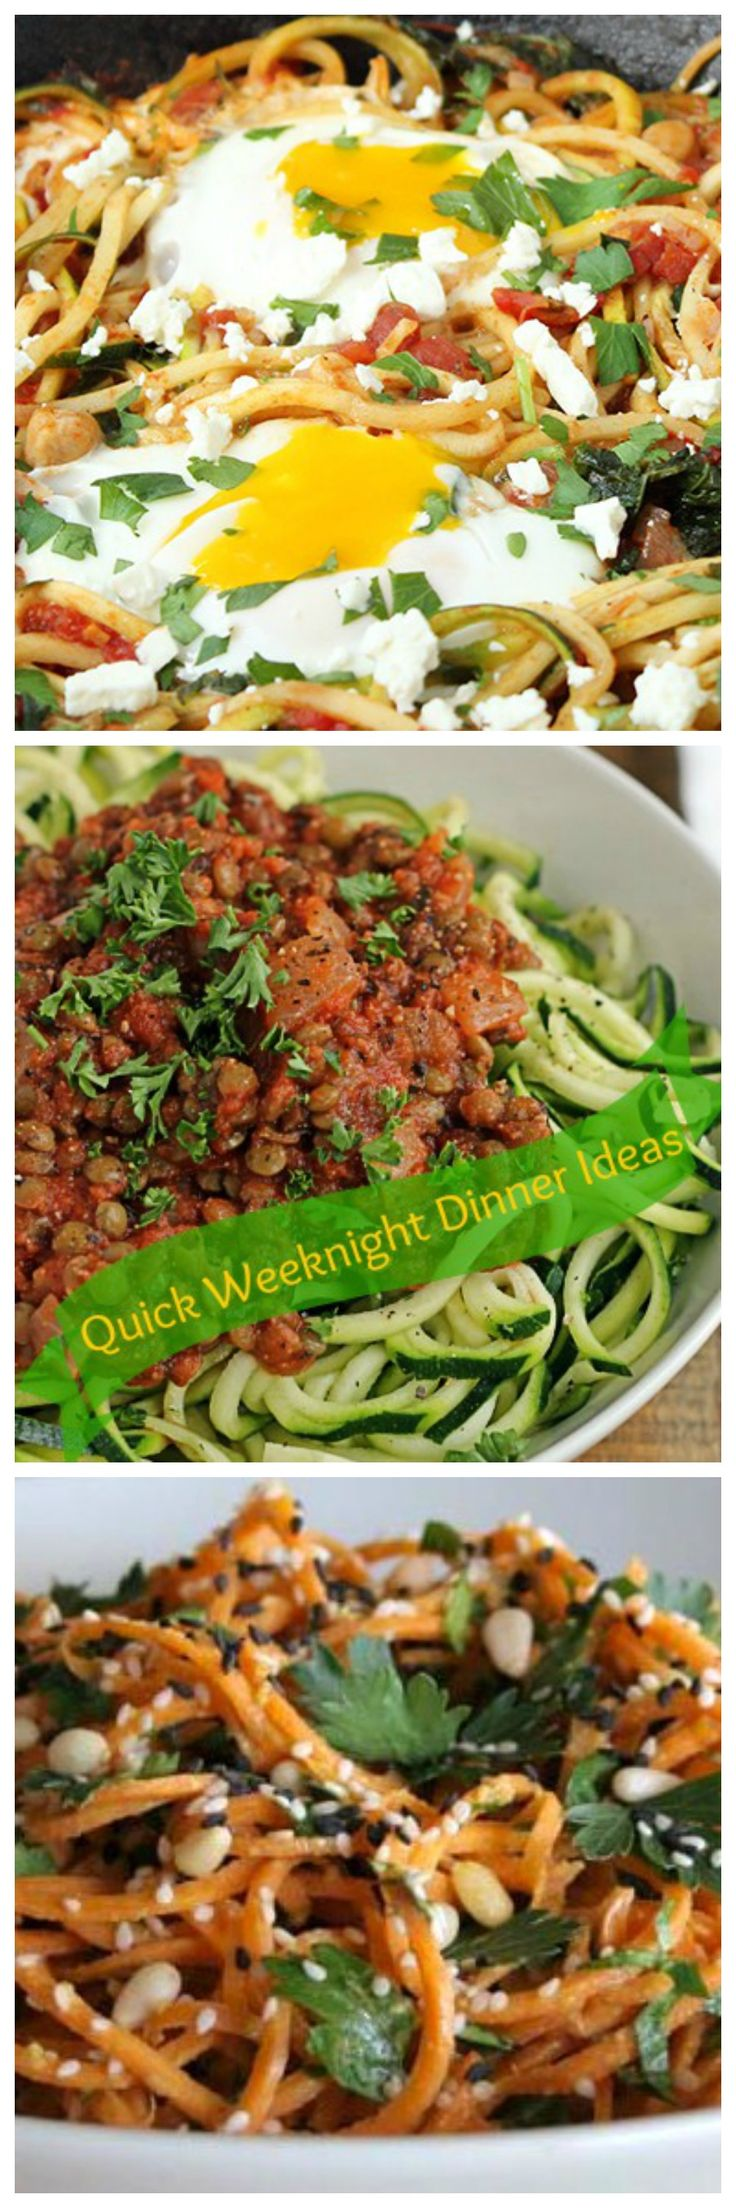 Quick Weeknight Dinner Ideas with recipes.  from KitcheNiche.  http://kitcheniche.com/recipes.html